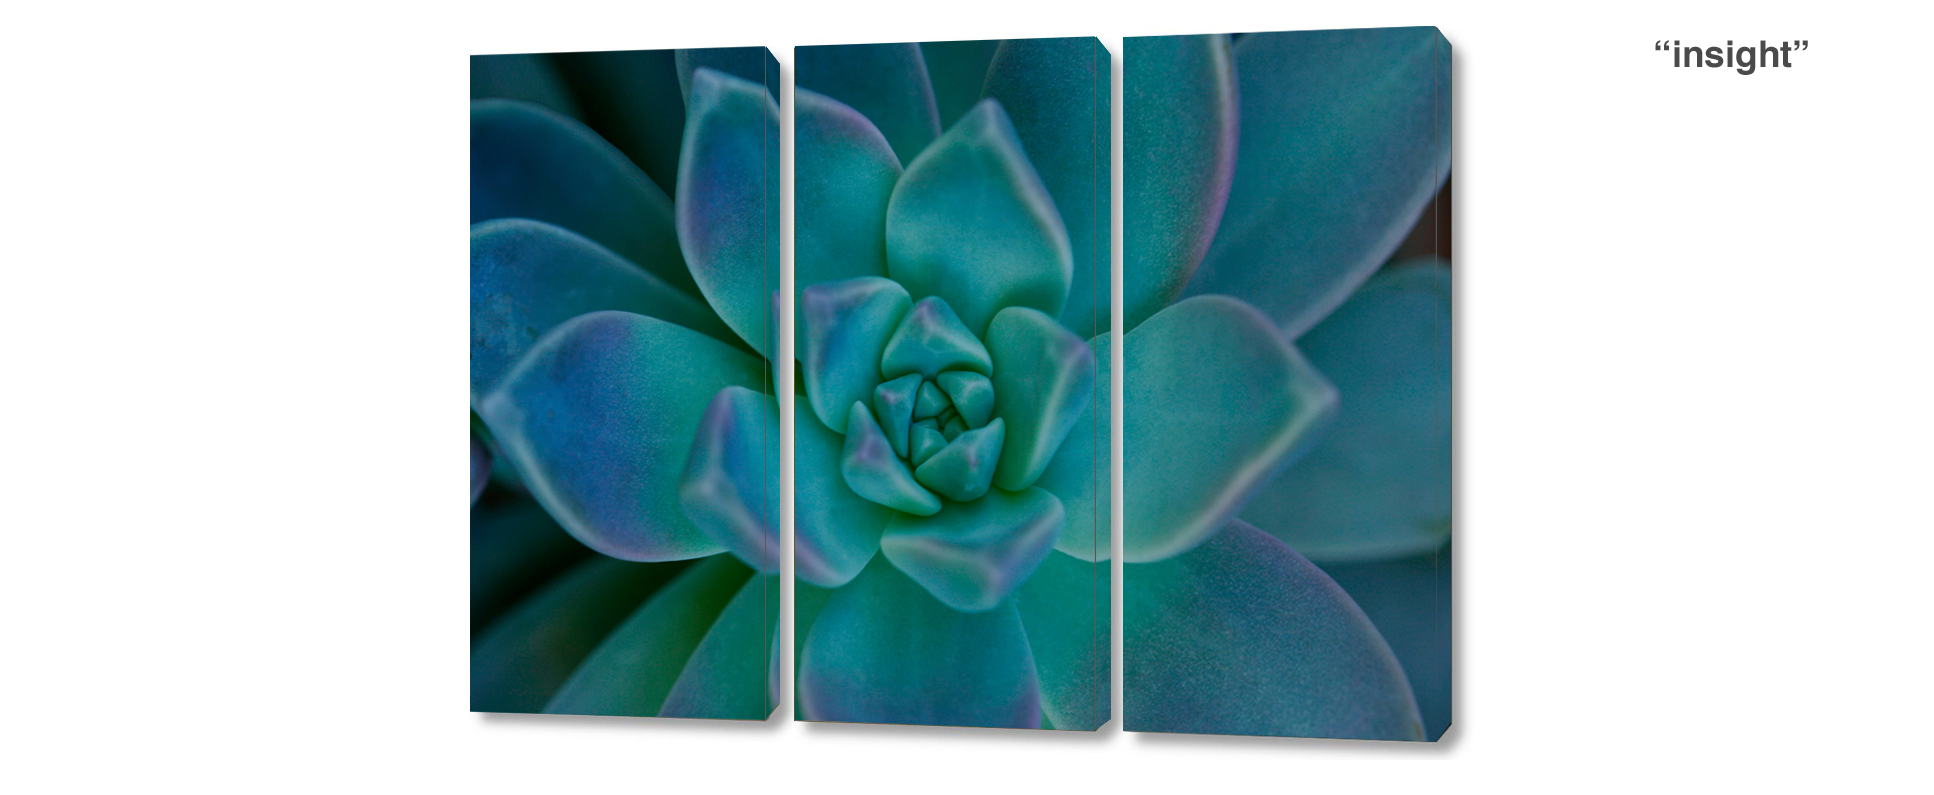 triptych succulent - 3 Piece limited edition giclee canvas floral wall decor